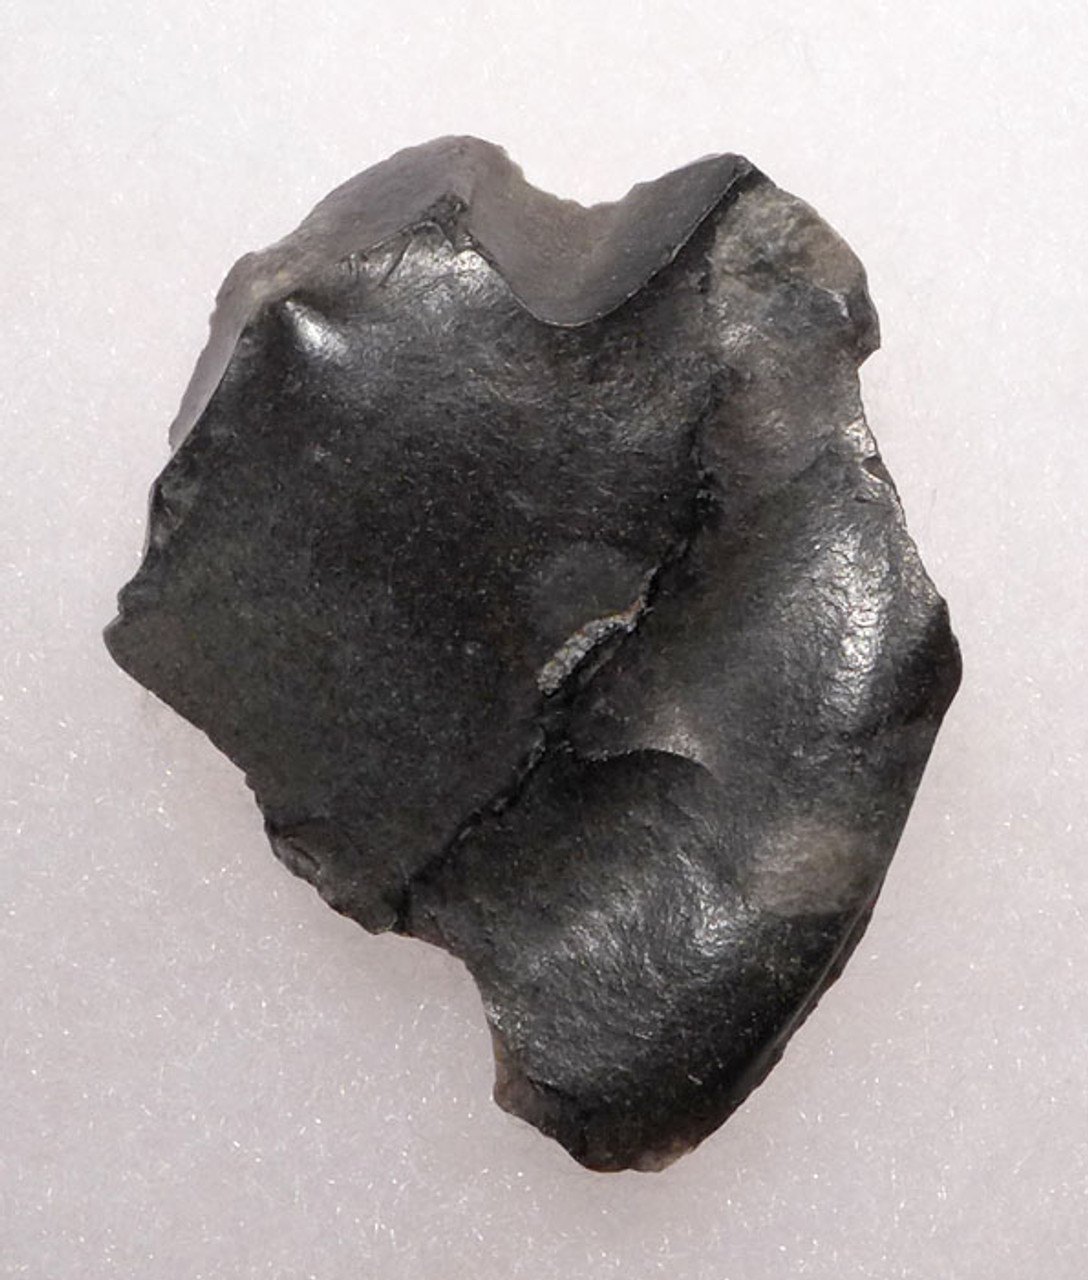 CL001 - EXTREMELY RARE CLACTONIAN FLAKE SCRAPER FROM NORTHERN EUROPE MADE BY HOMO ERECTUS